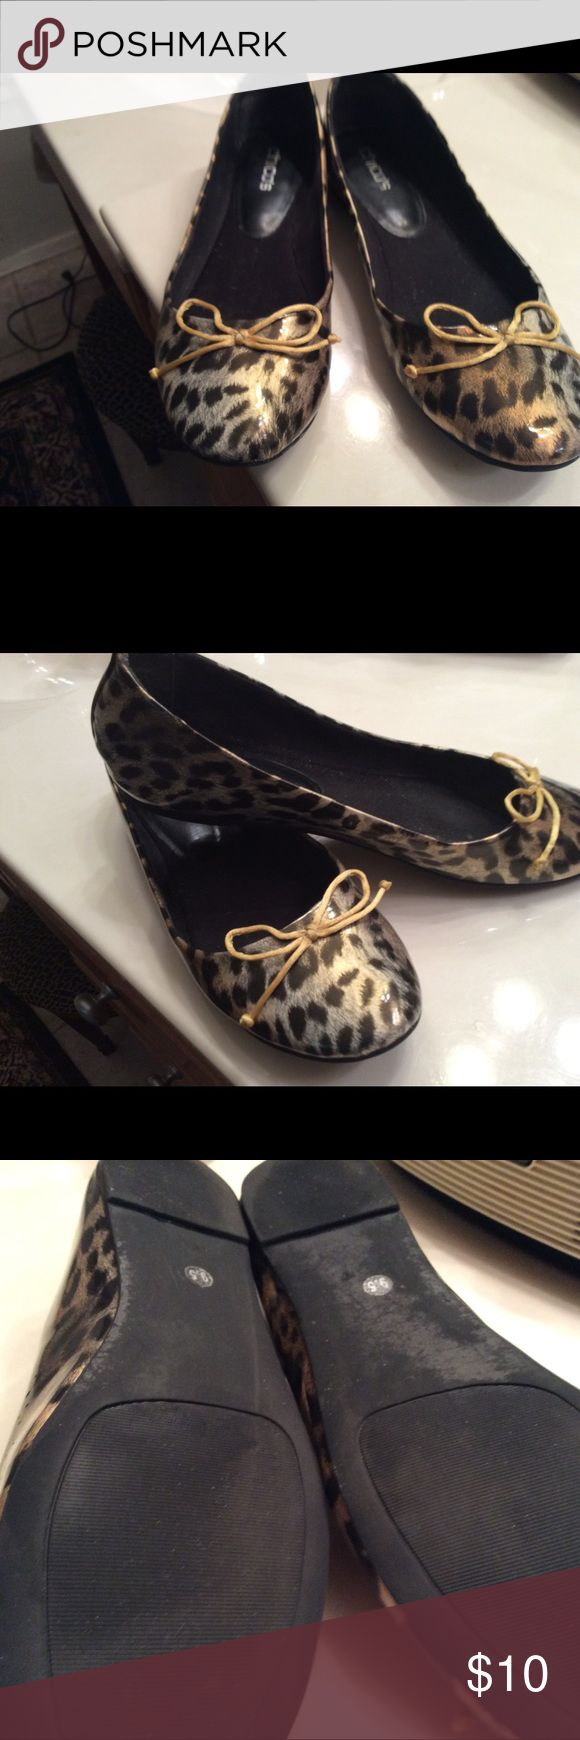 Chico's Animal Print Ballet Flats Size 9.5 M Really cute flats from Chico's. I only wore them a couple of times. Chico's Shoes Flats & Loafers